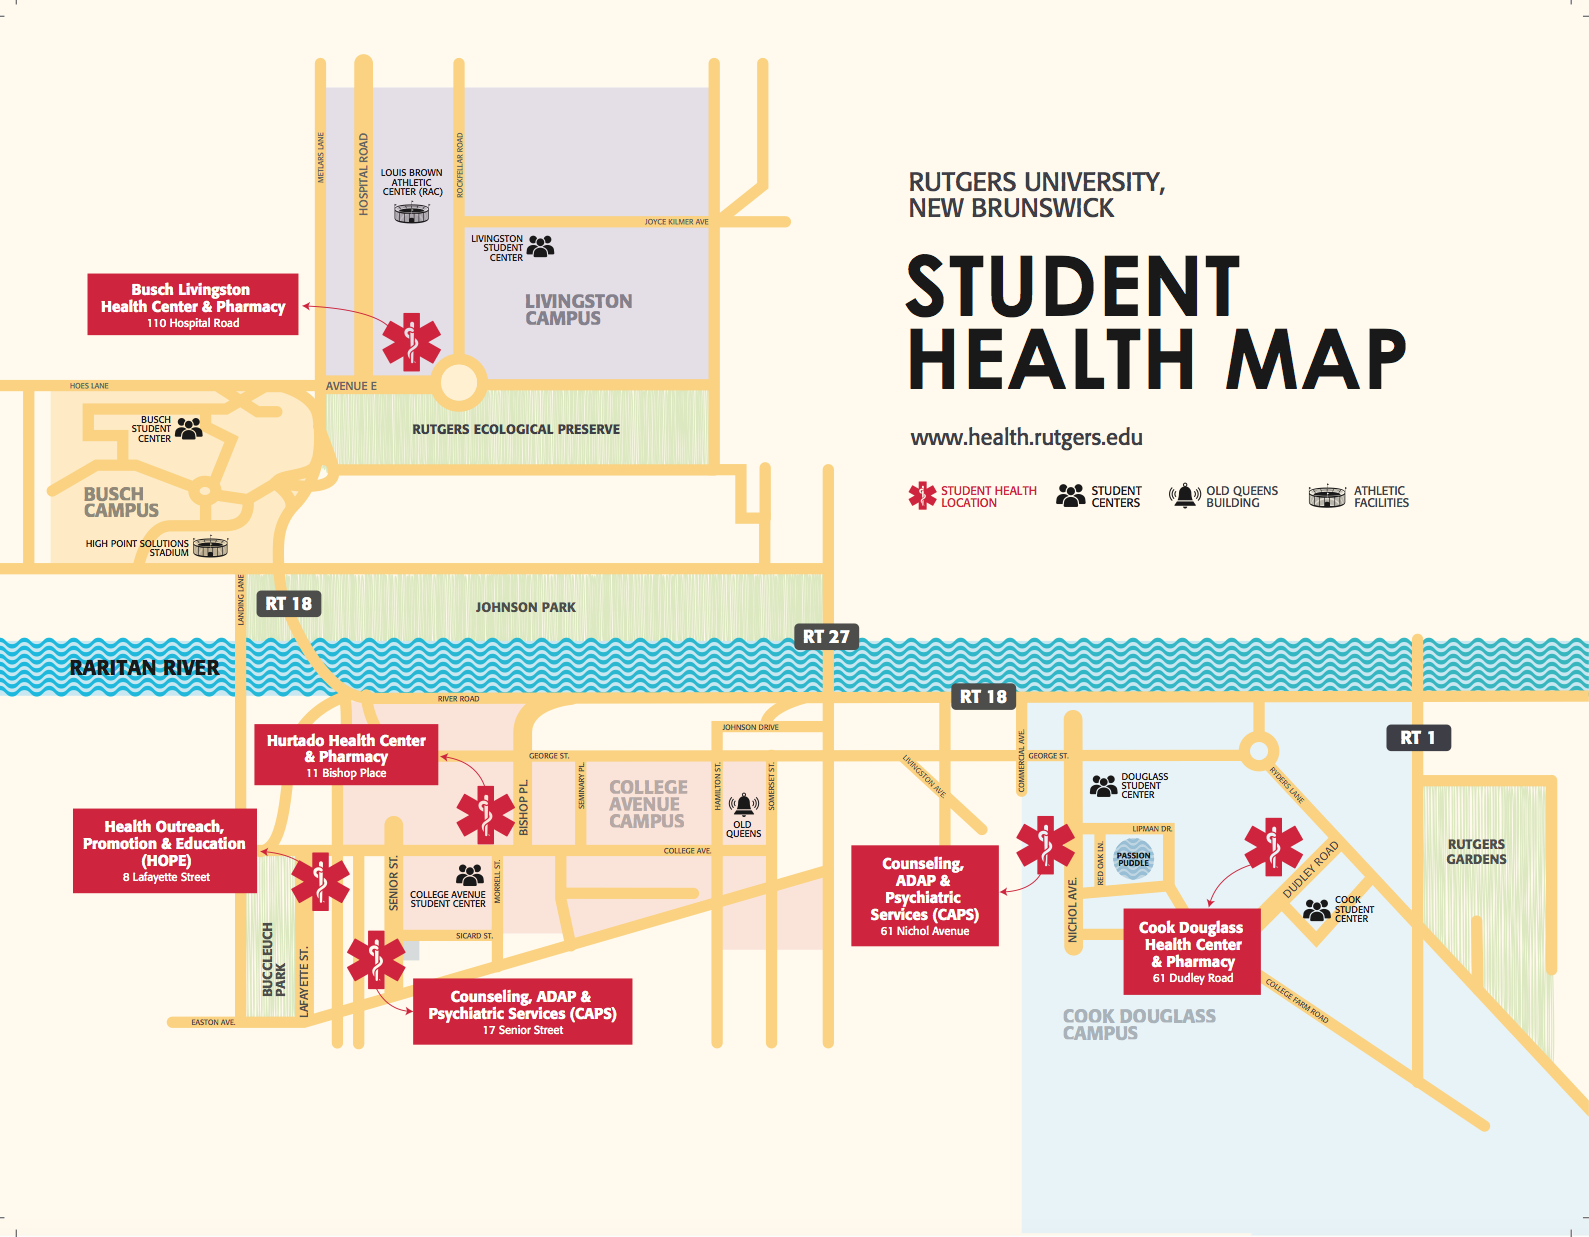 Map of Student Health Locations